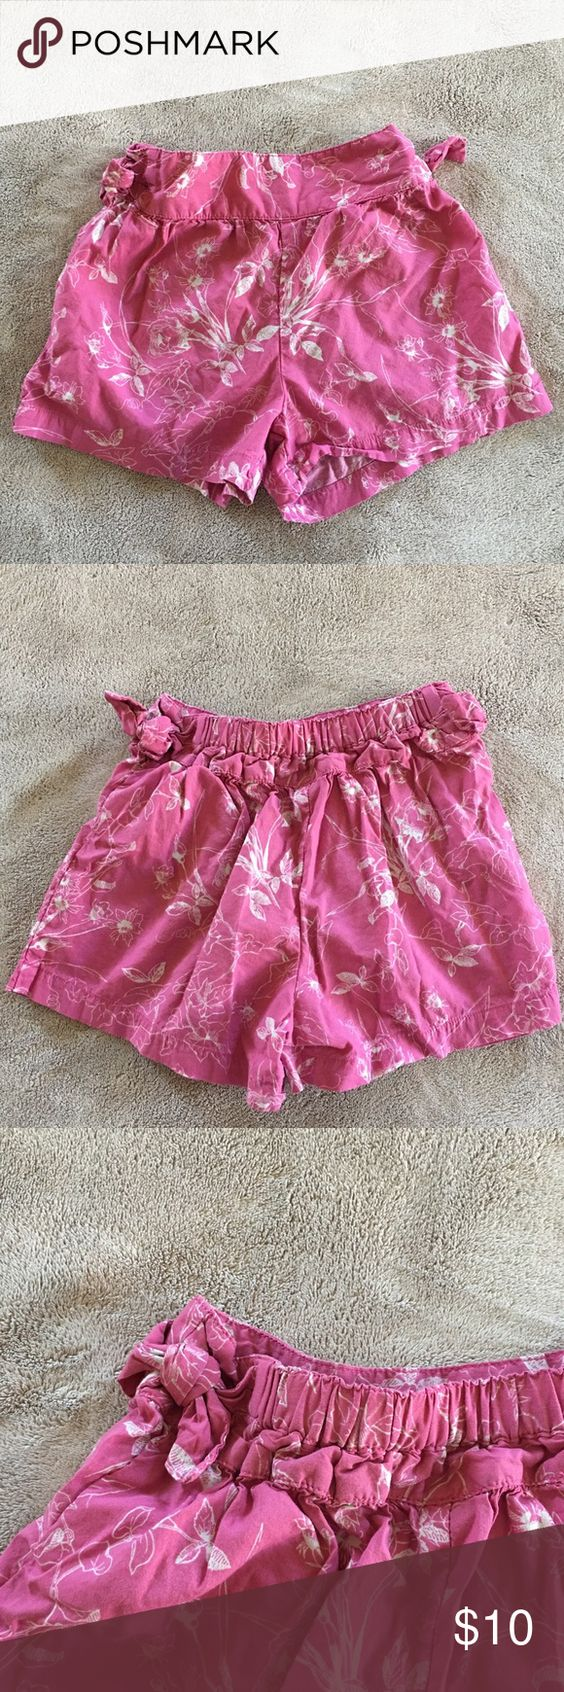 Gap Pink Floral Shorts Gap pink floral shorts with bows on the hips and an elasticated waist band. Worn once. Excellent condition. Gap Bottoms Shorts